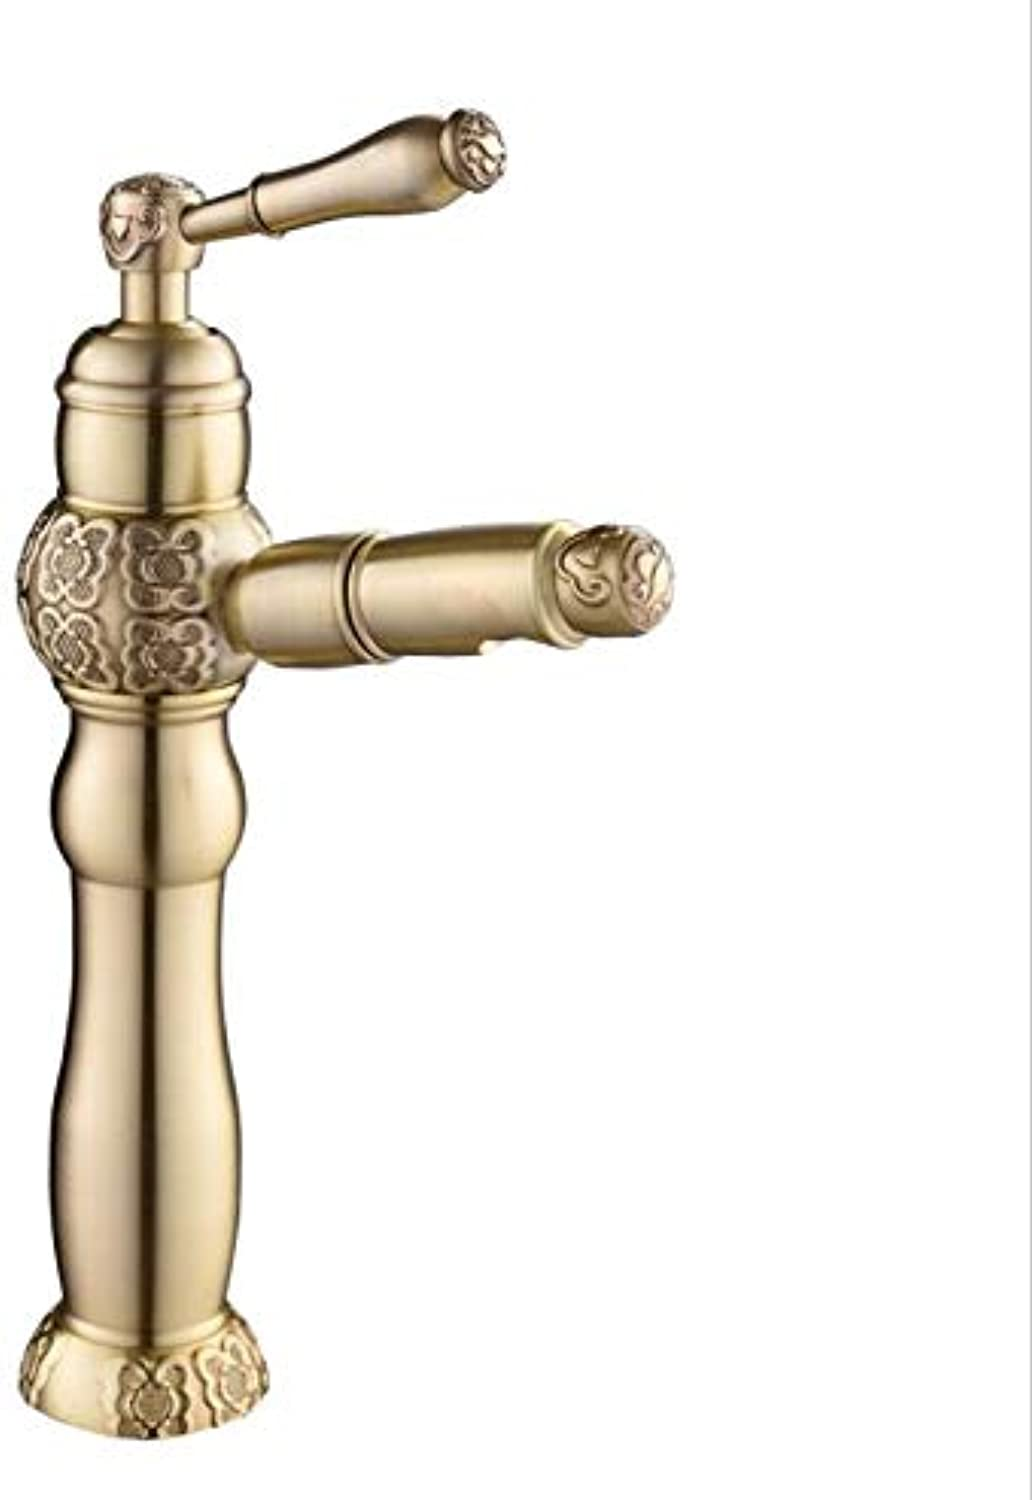 Decorry Water Tap Black Oil Washroom Basin Faucet Sink Tap Mixer Hot & Cold Bathroom Faucet Pull Out Sink Faucet Torneira Lavatorio,Antique Brass Tall